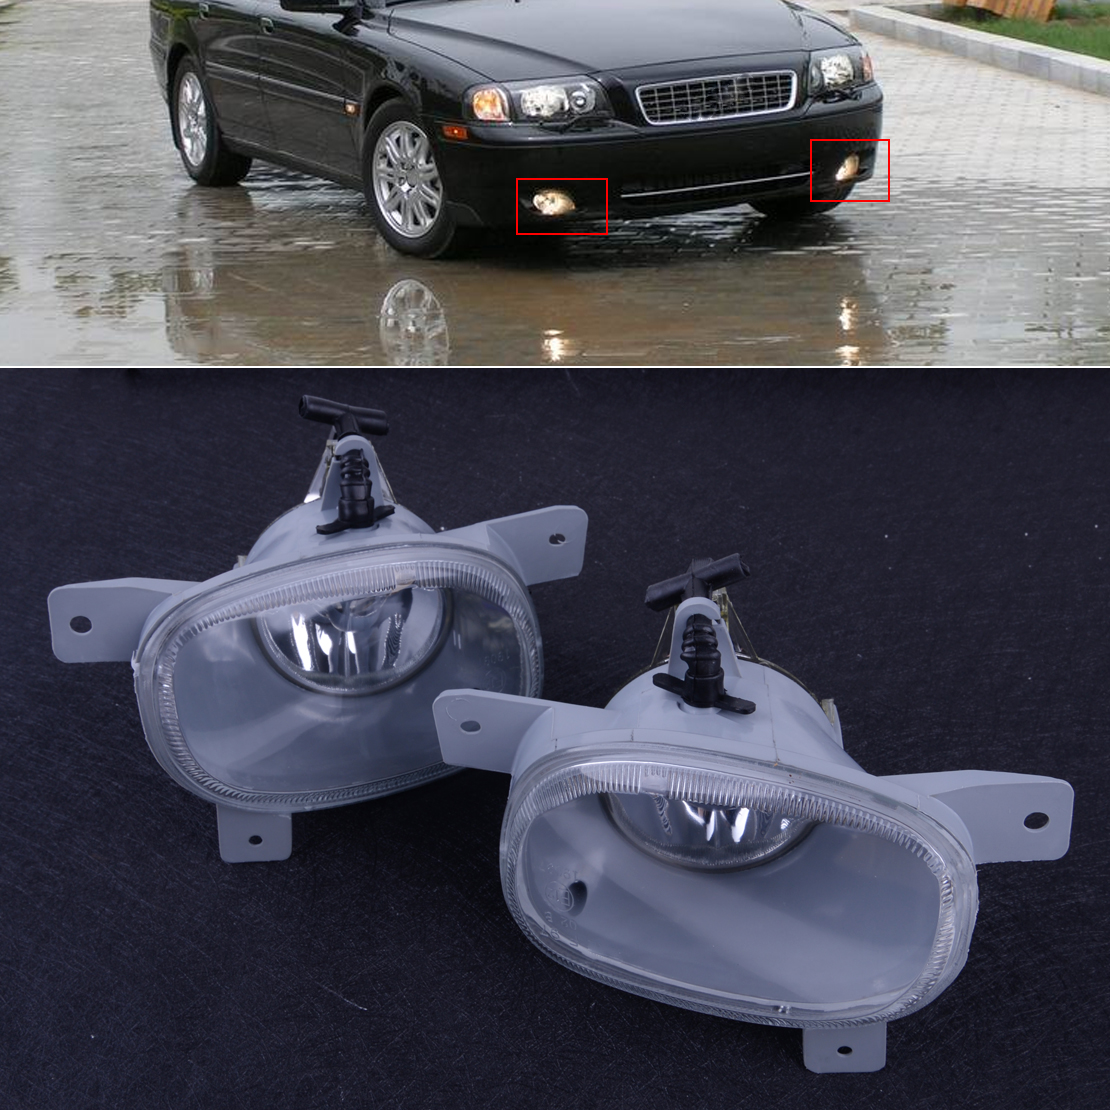 CITALL 1Pc Left Right Front Bumper Fog Light Lamp 8620224 8620225 Fit For Volvo S80 1999 2000 2001 2002 2003 2004 2005 2006 car styling led light for vw touareg 2003 2004 2005 2006 2007 right side led front bumper fog lamp fog light with bulb